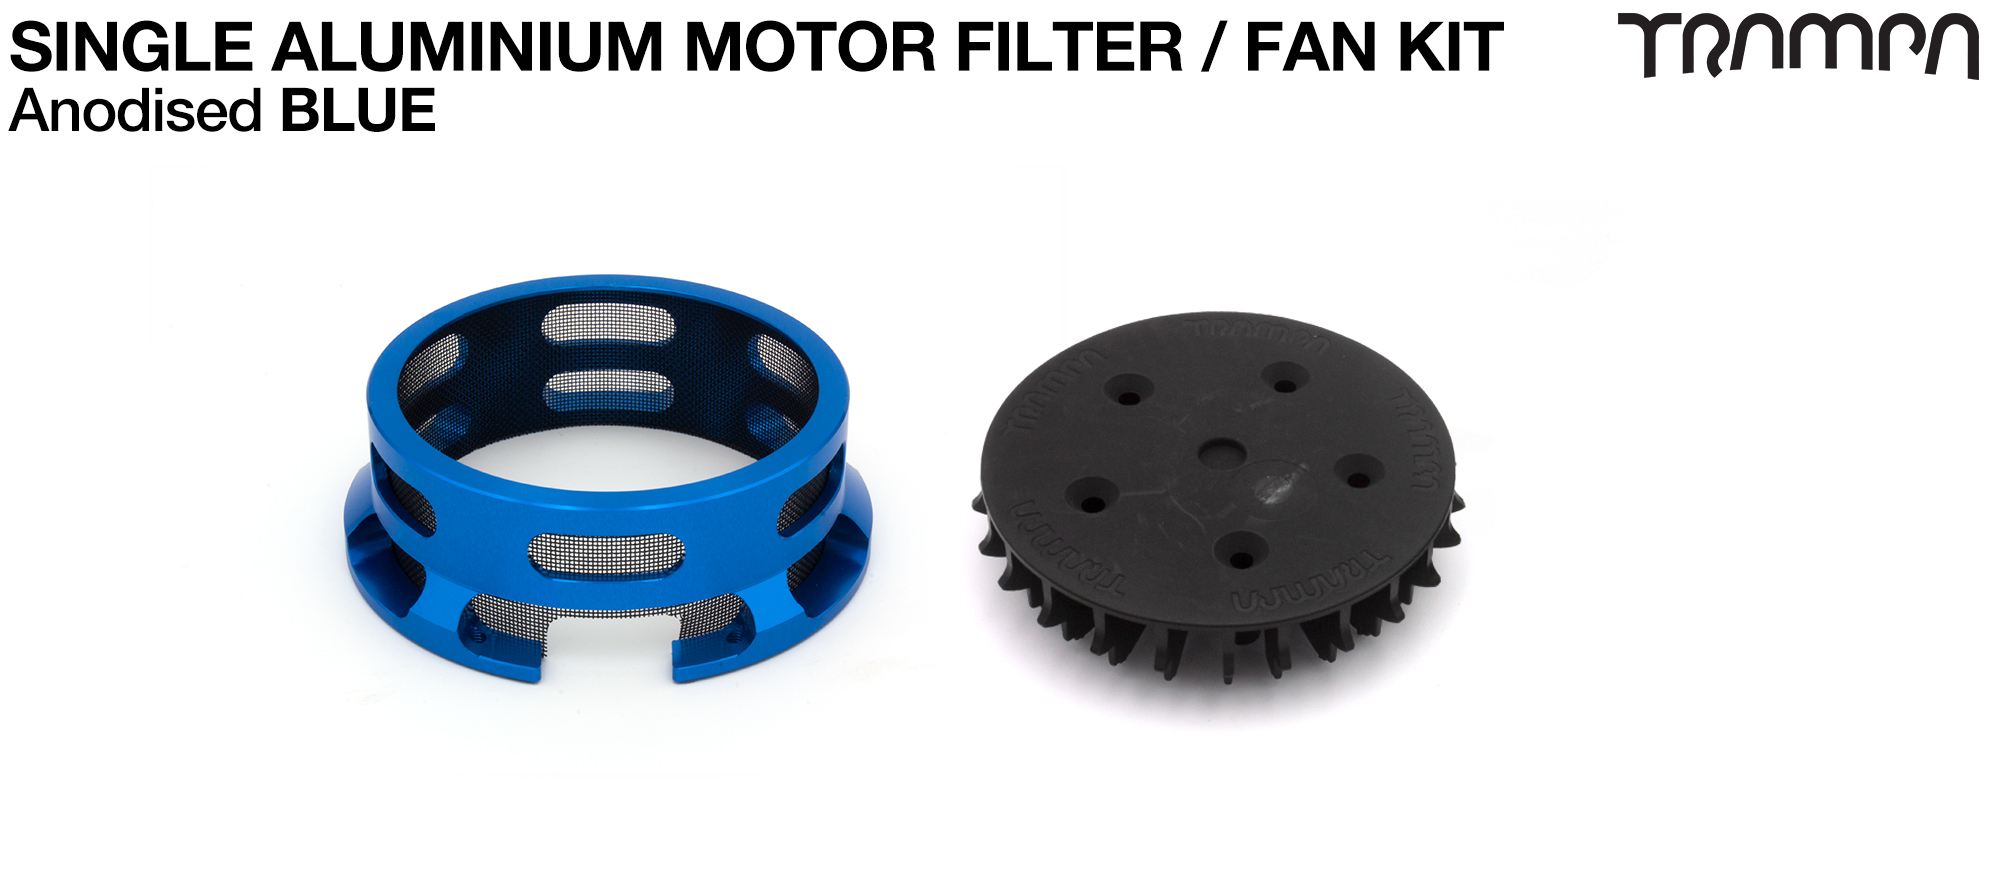 14FiFties BLACK Motor protection Housing with BLUE particle Filter & Fan - SINGLE